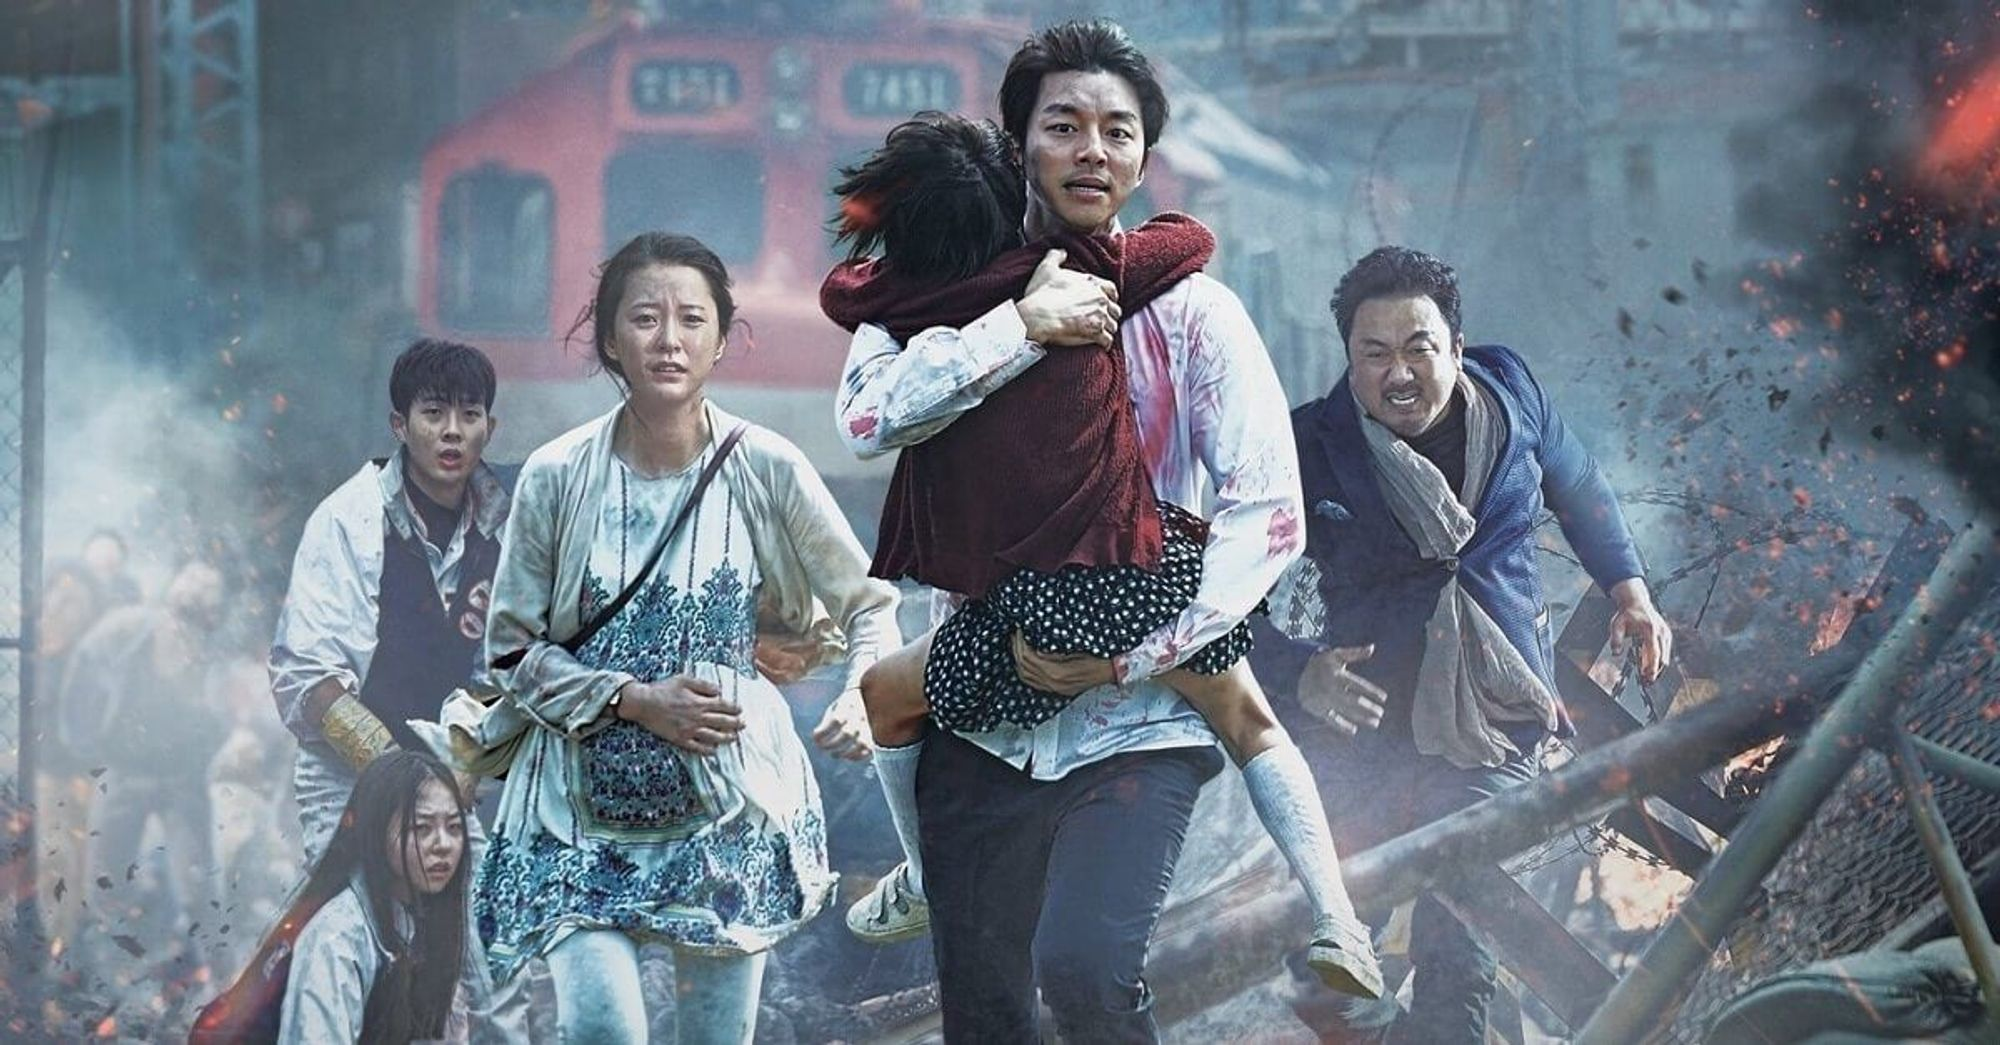 How to Watch Train to Busan on Netflix - Best VPNs To Use